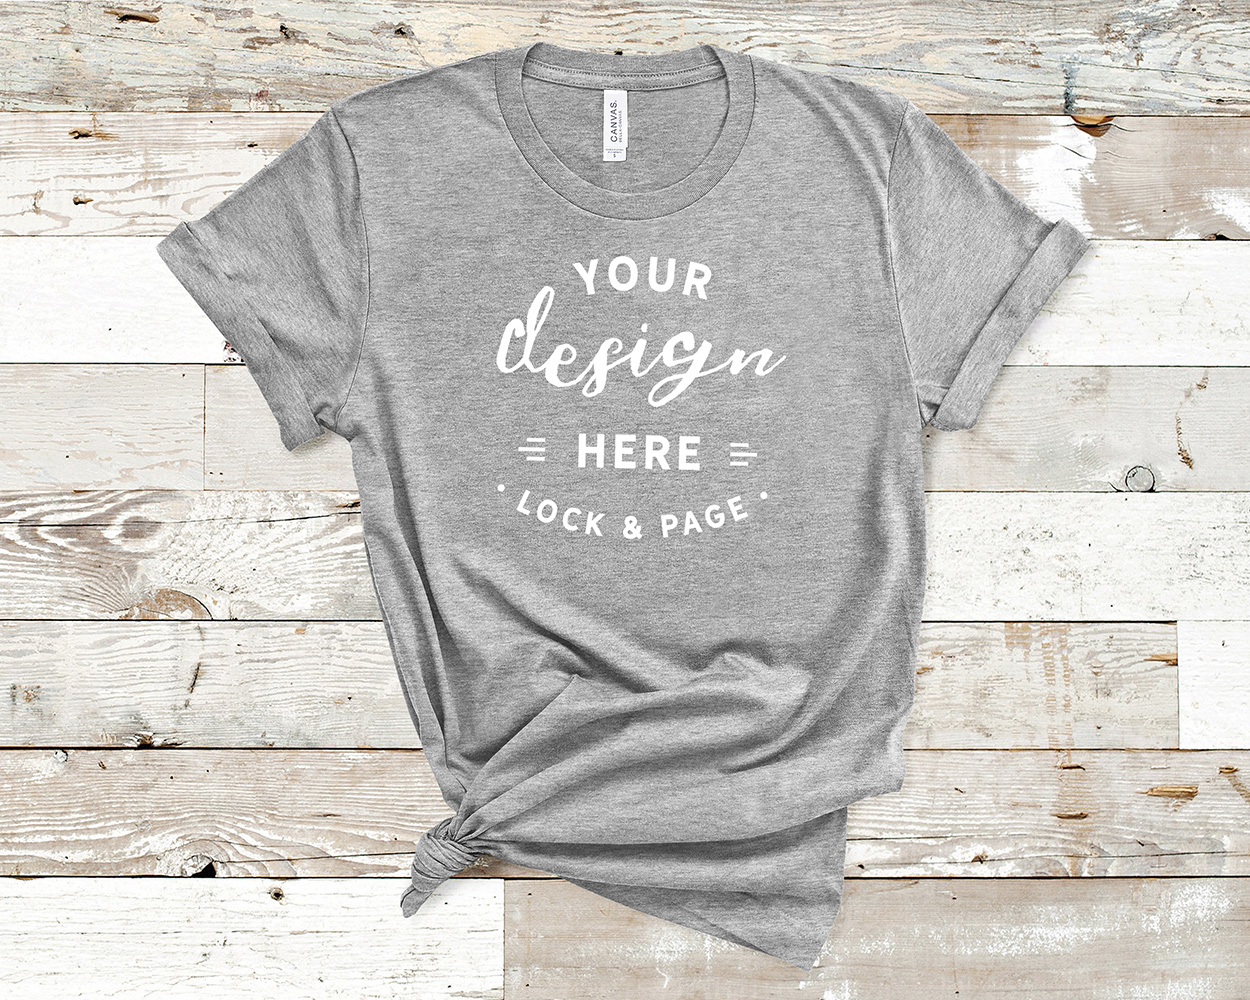 Bella Canvas 3001 Mockup T-Shirt Bundle All Colors On Wood example image 3